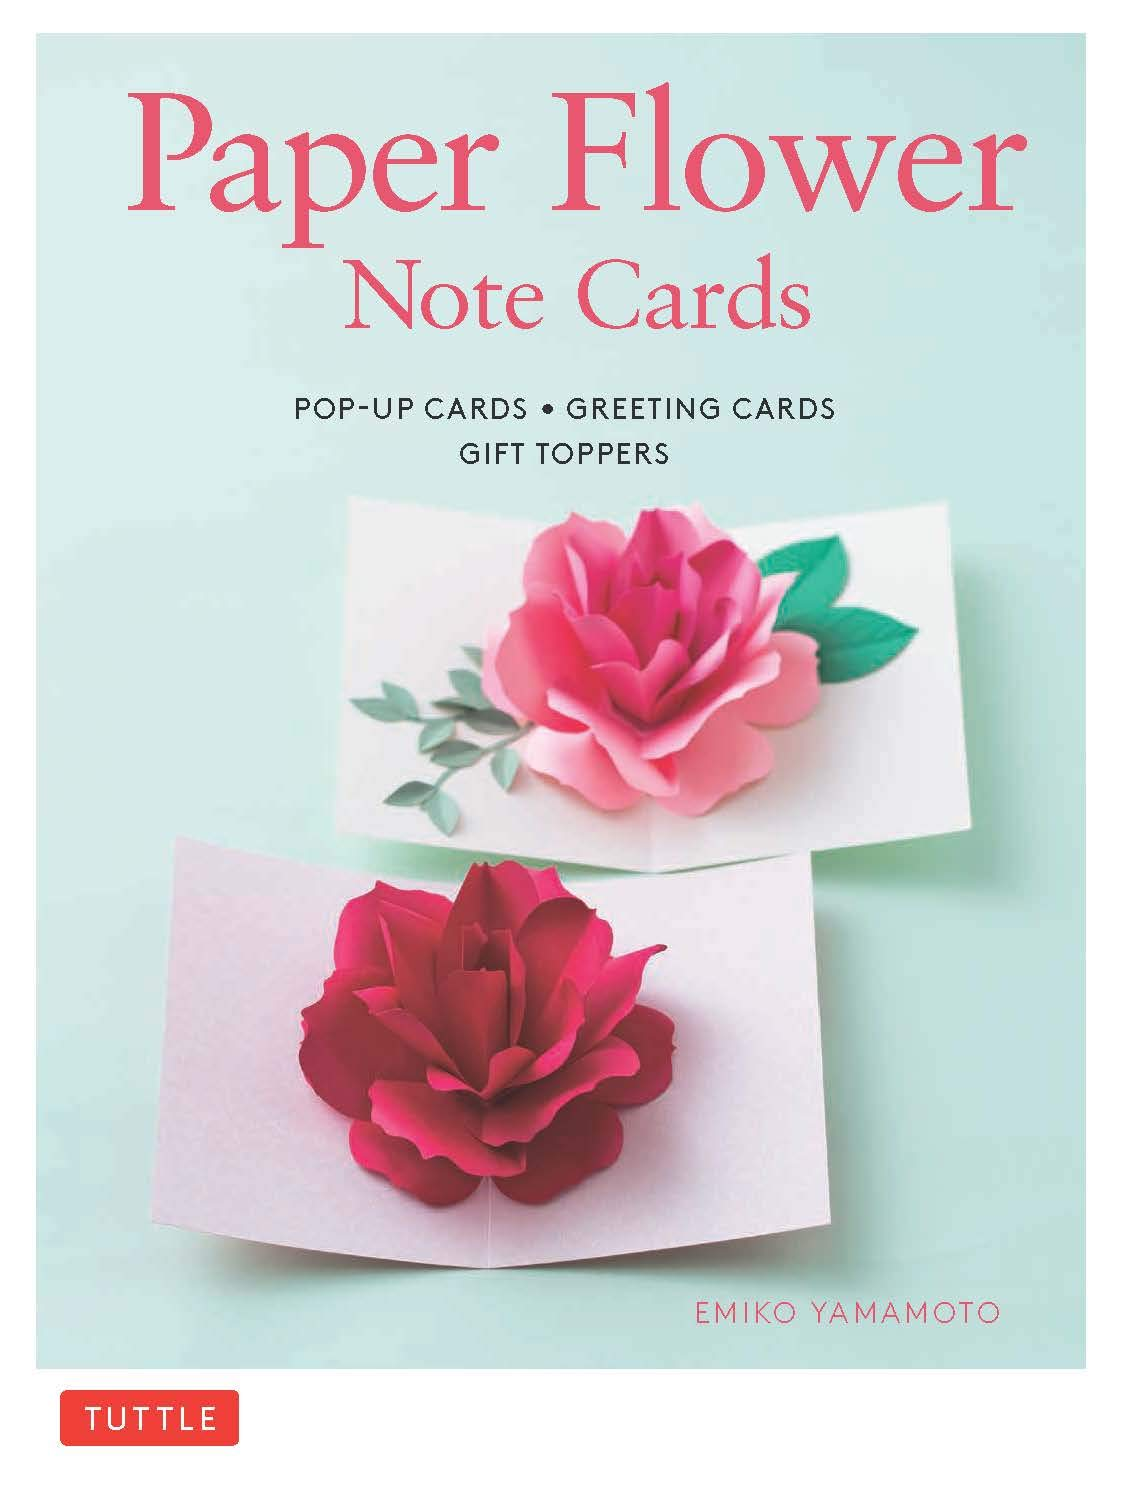 Paper Flower Note Cards  Pop Up Cards   Greeting Cards   Gift Toppers